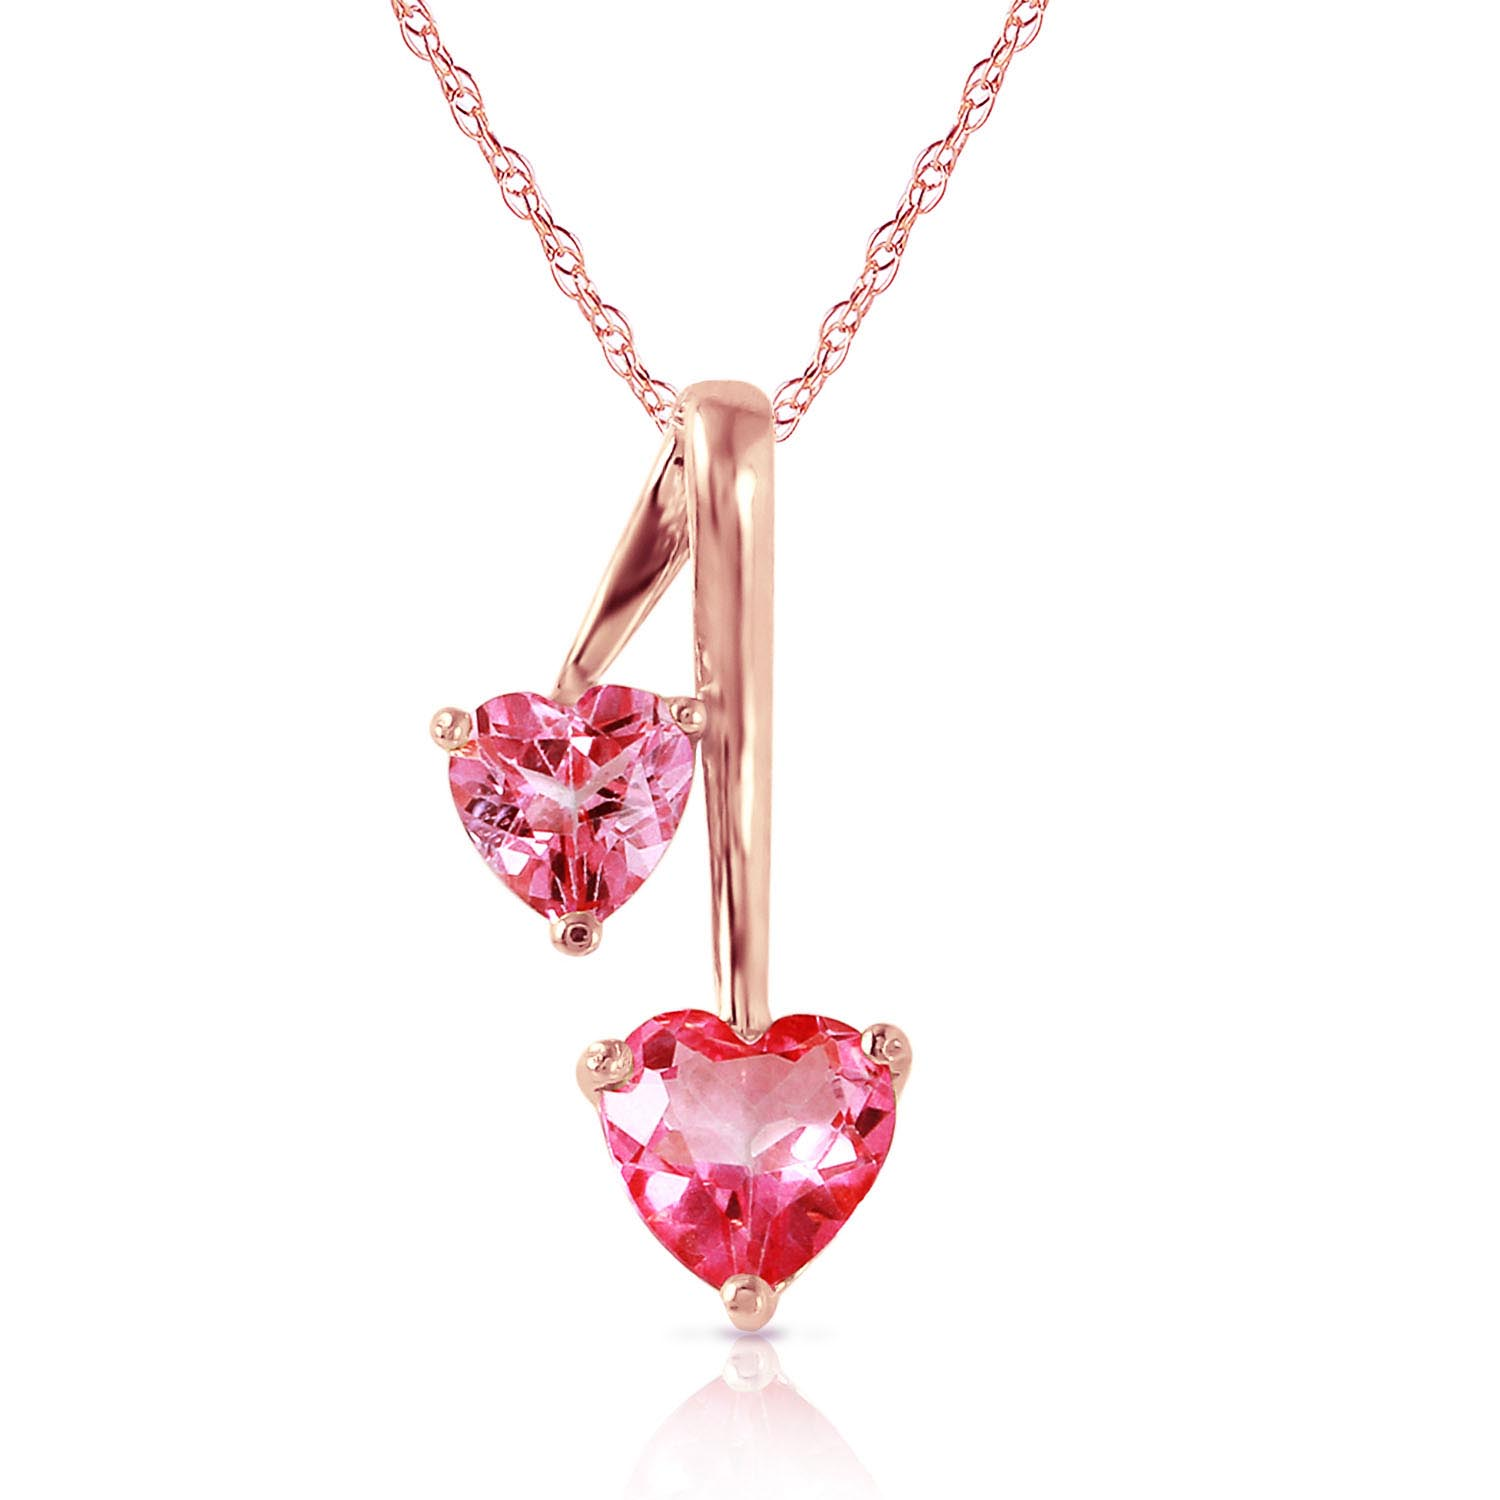 Bargain Pink Topaz Twin Heart Pendant Necklace 1.4ctw in 9ct Rose Gold Stockists